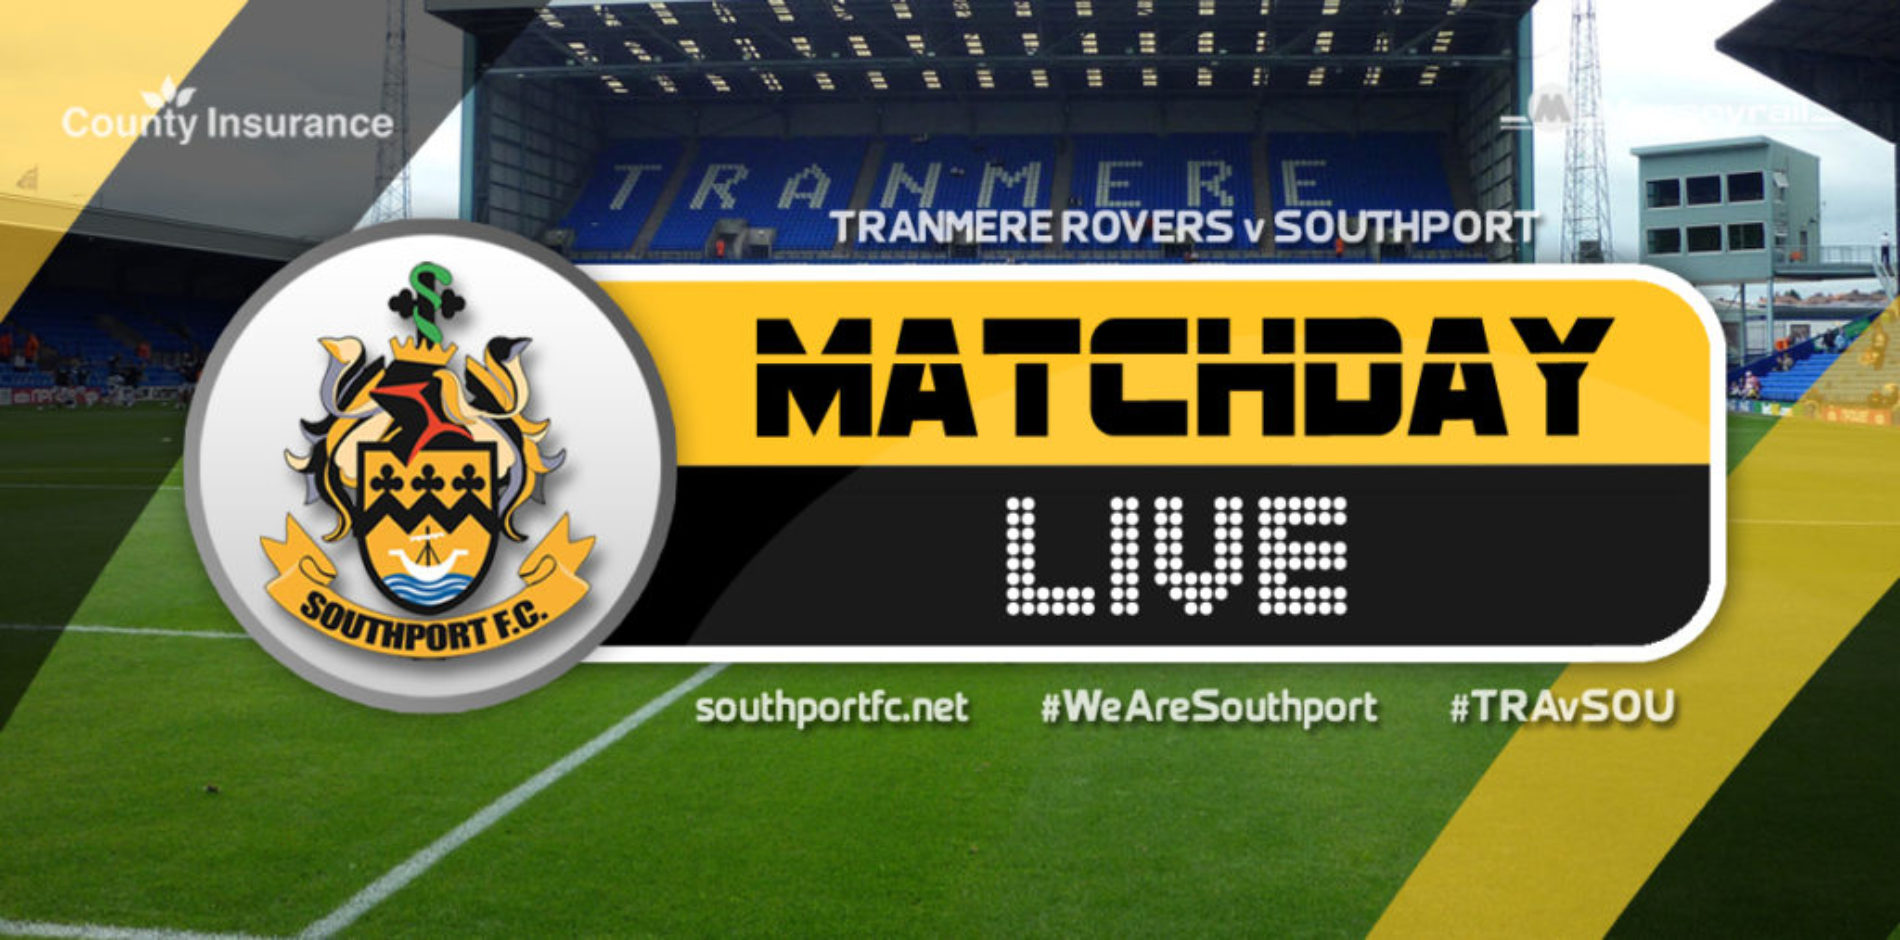 MATCHDAY LIVE | Tranmere Rovers V Southport